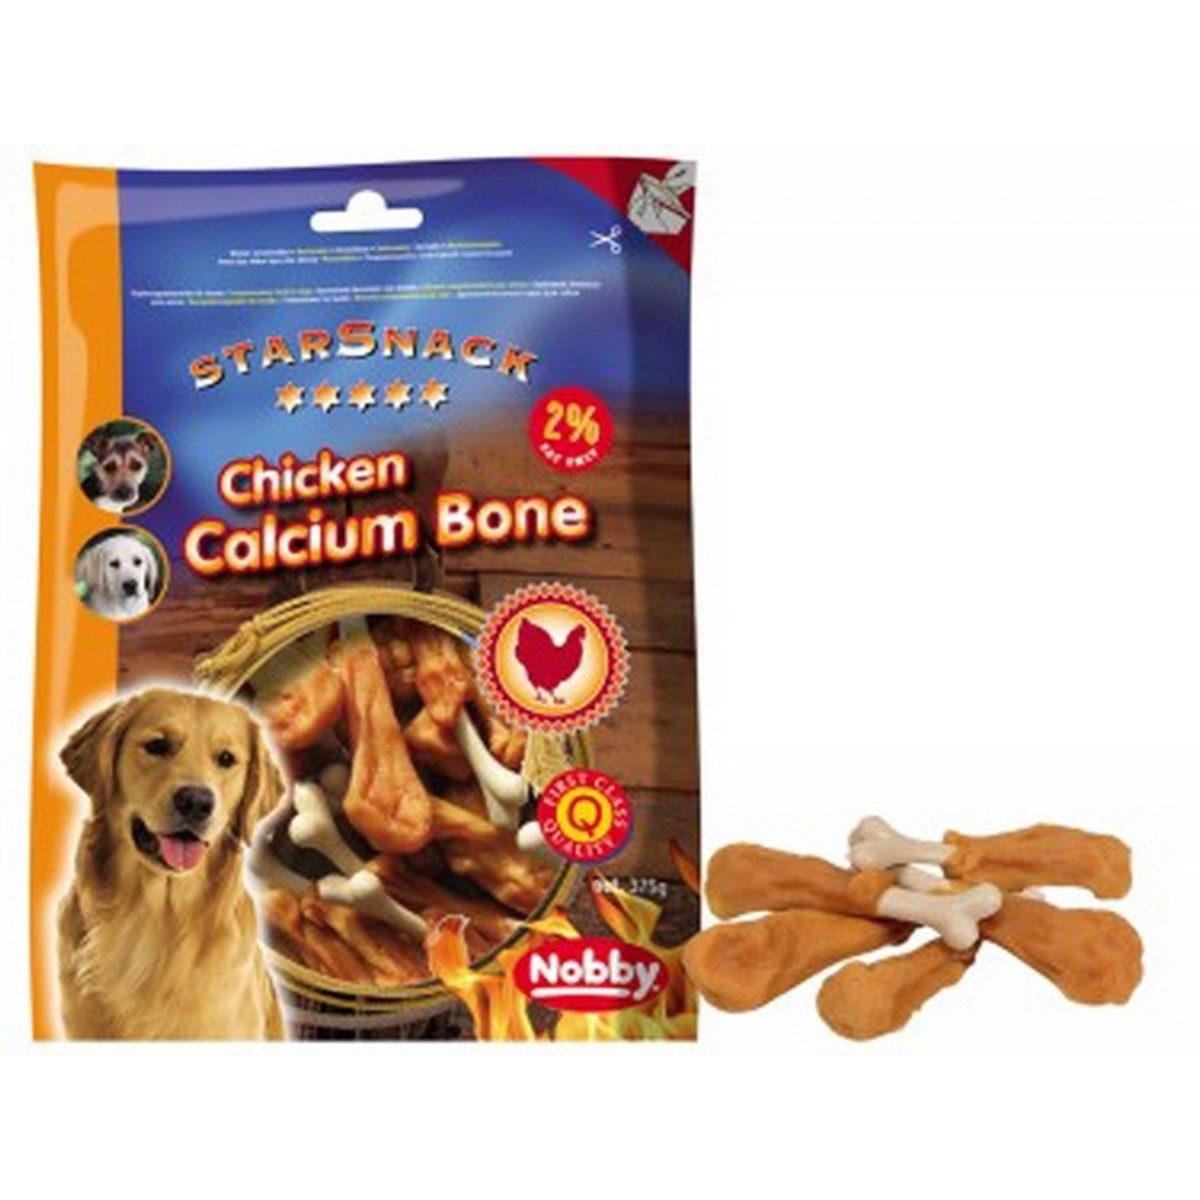 Barbecue Chicken Calcium Bone, 375 g  375 g